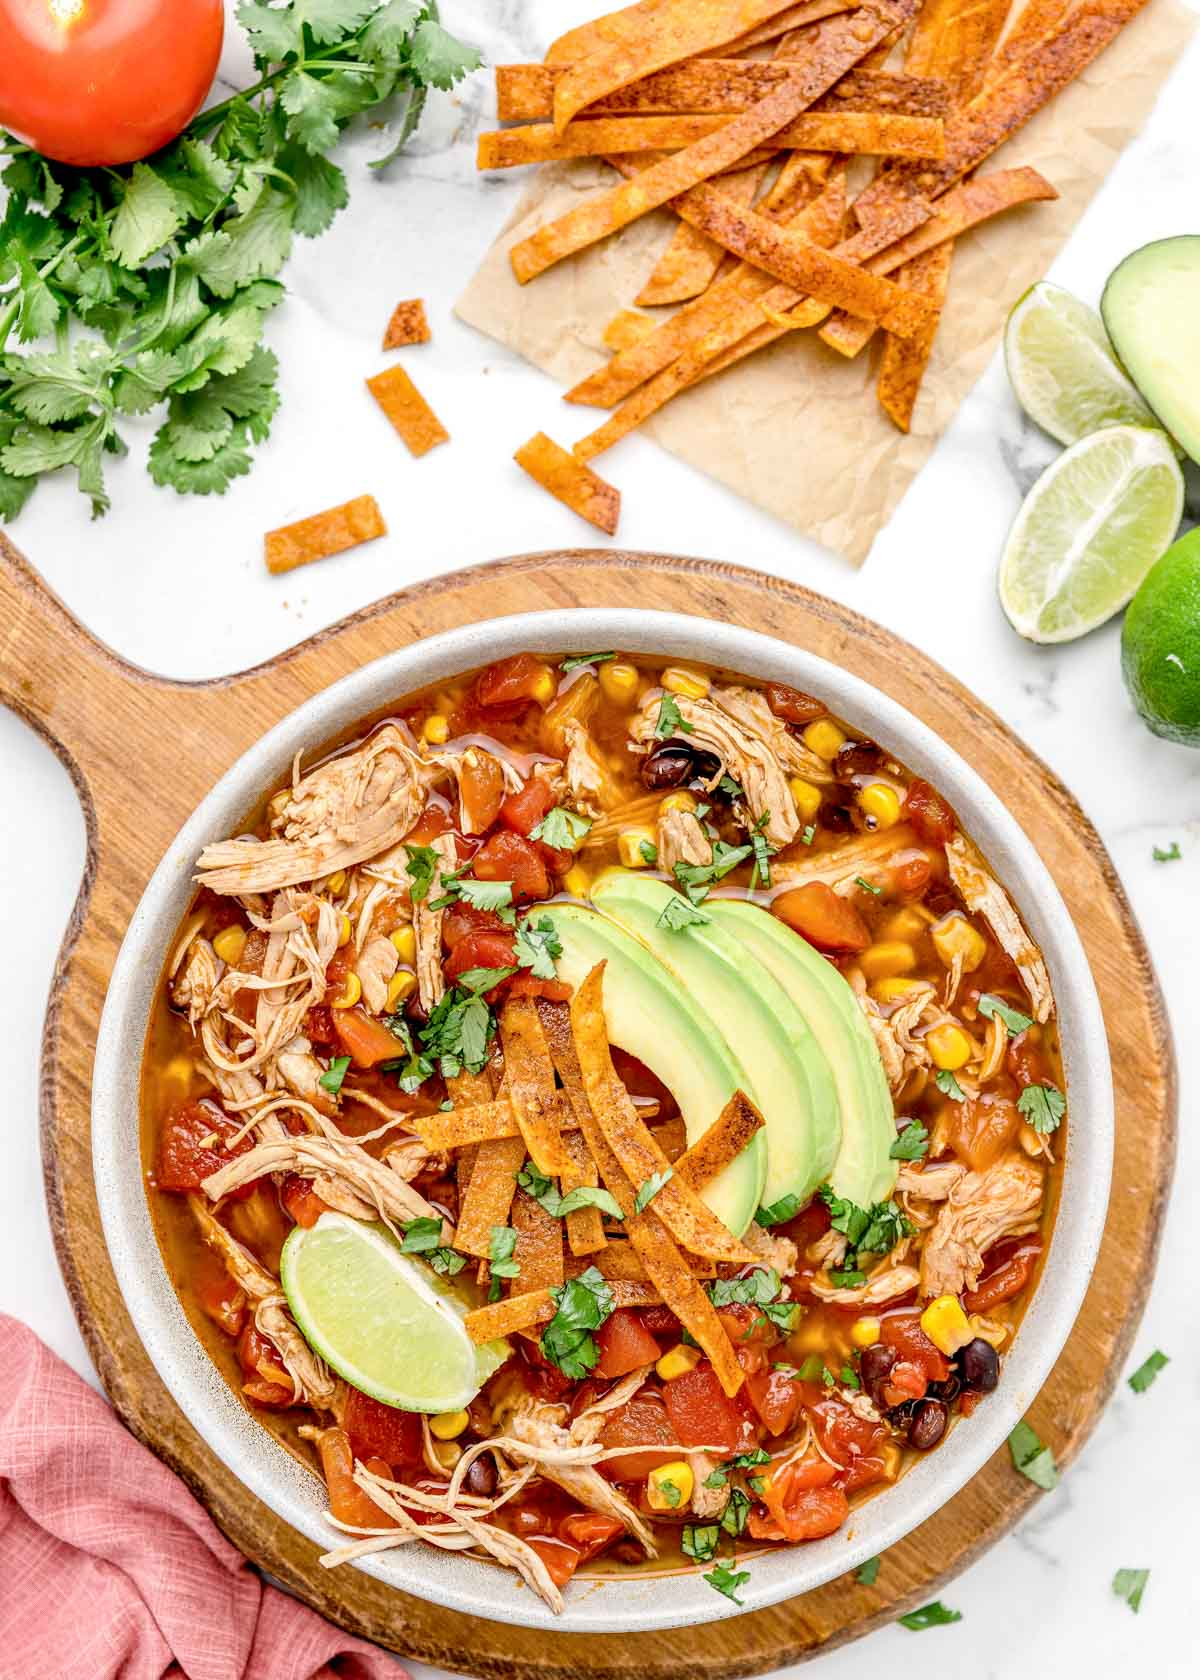 Instant pot chicken tortilla soup with toppings in a white bowl